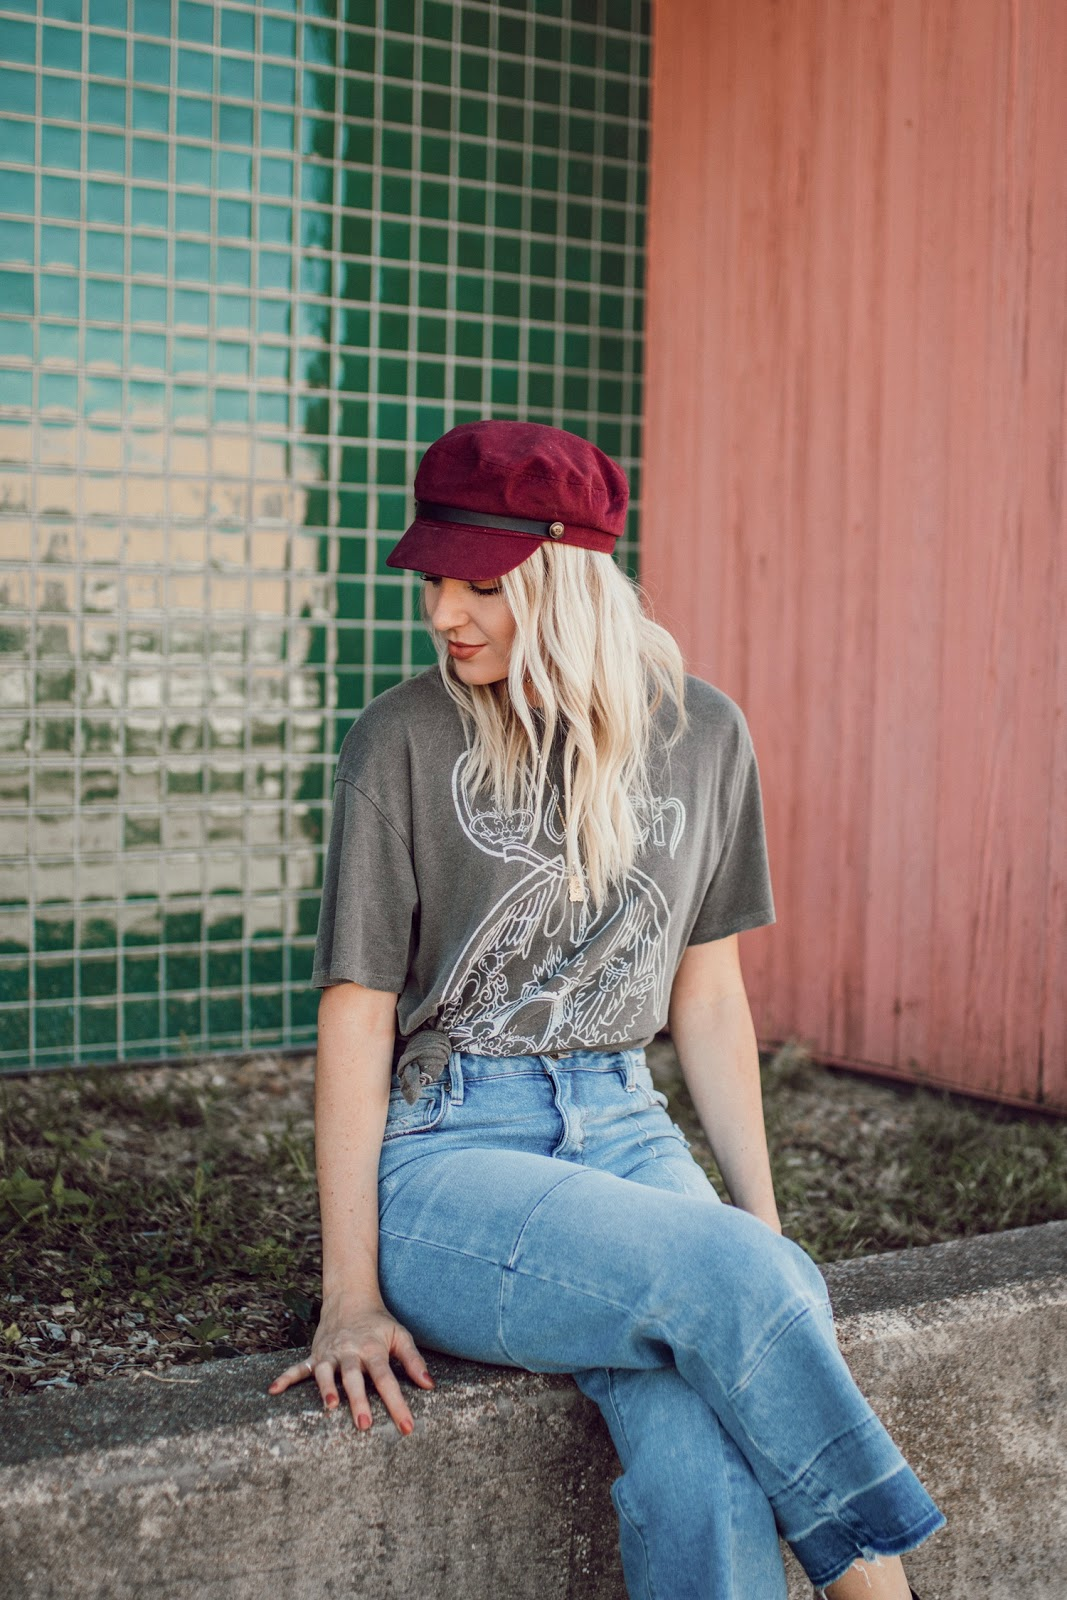 captain's hat, graphic tee